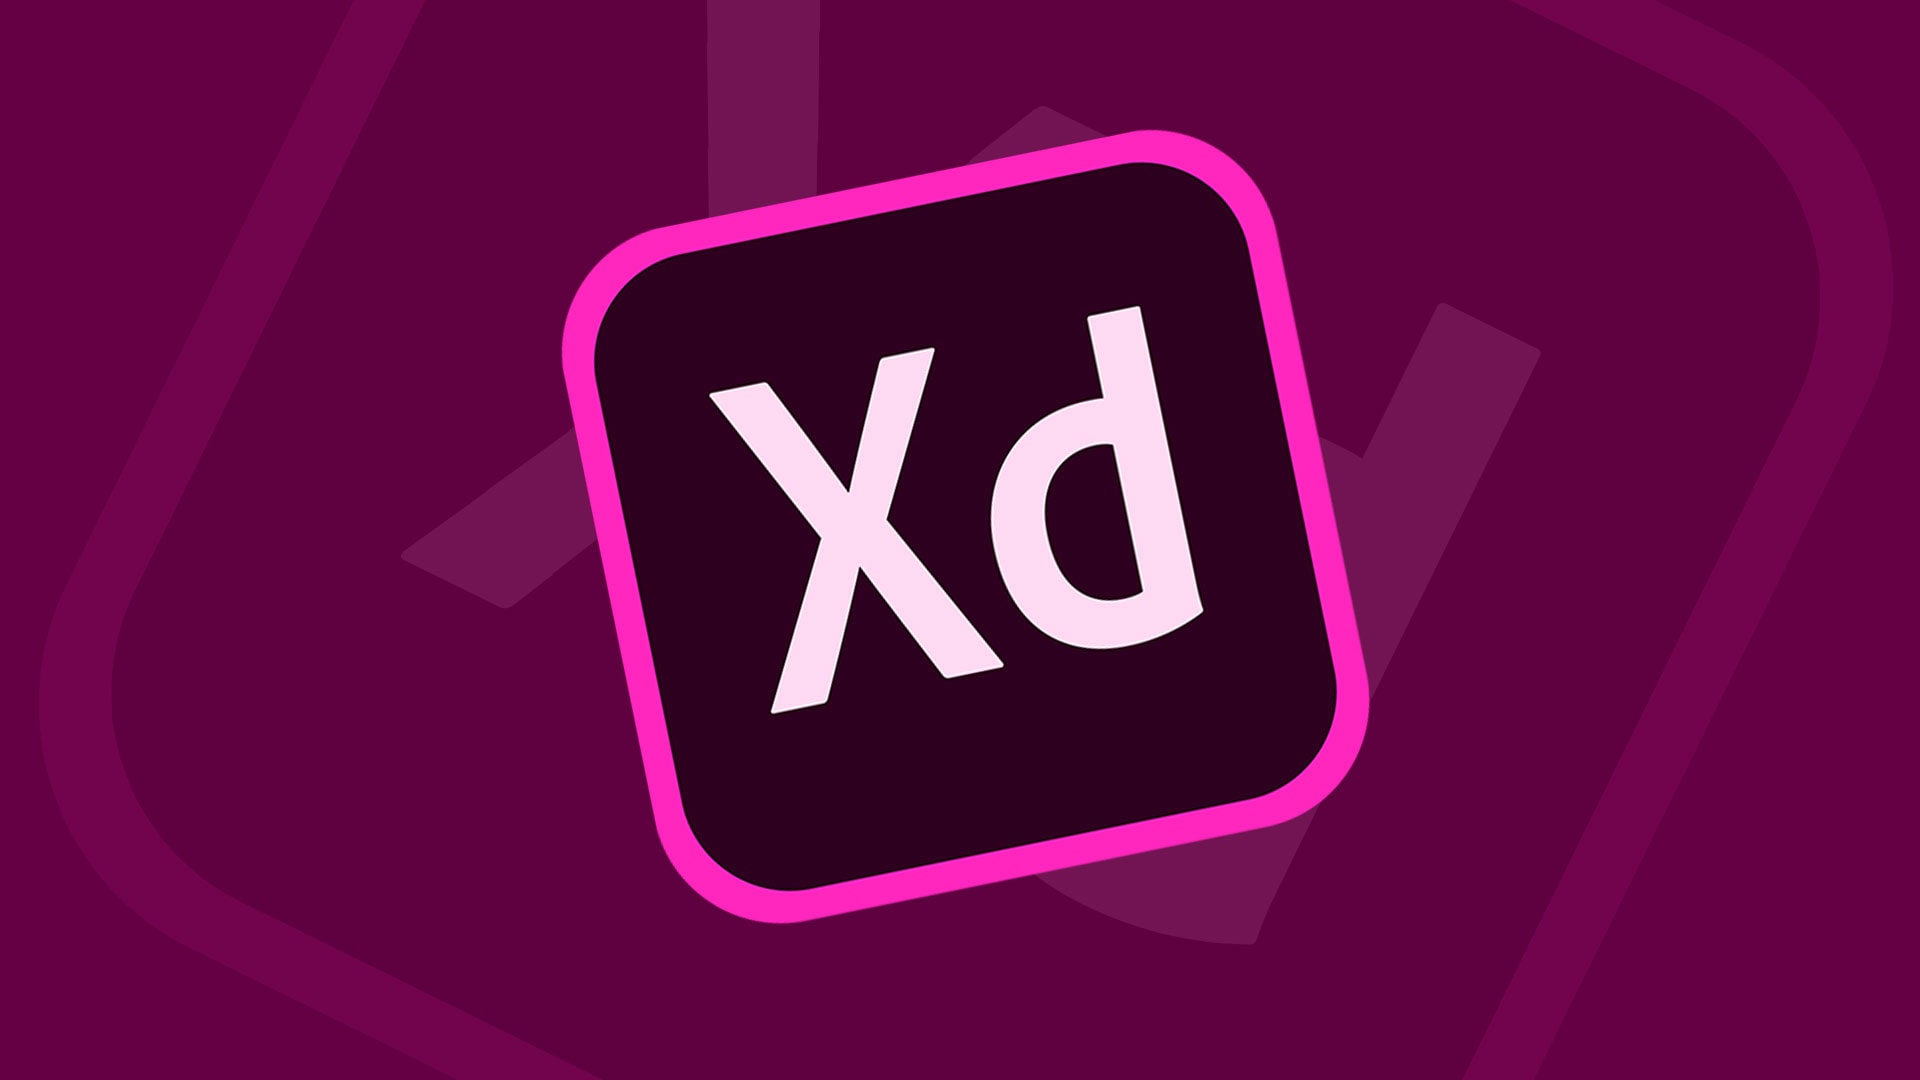 Adobe Updates XD with Responsive Resize, Timed Transitions and More